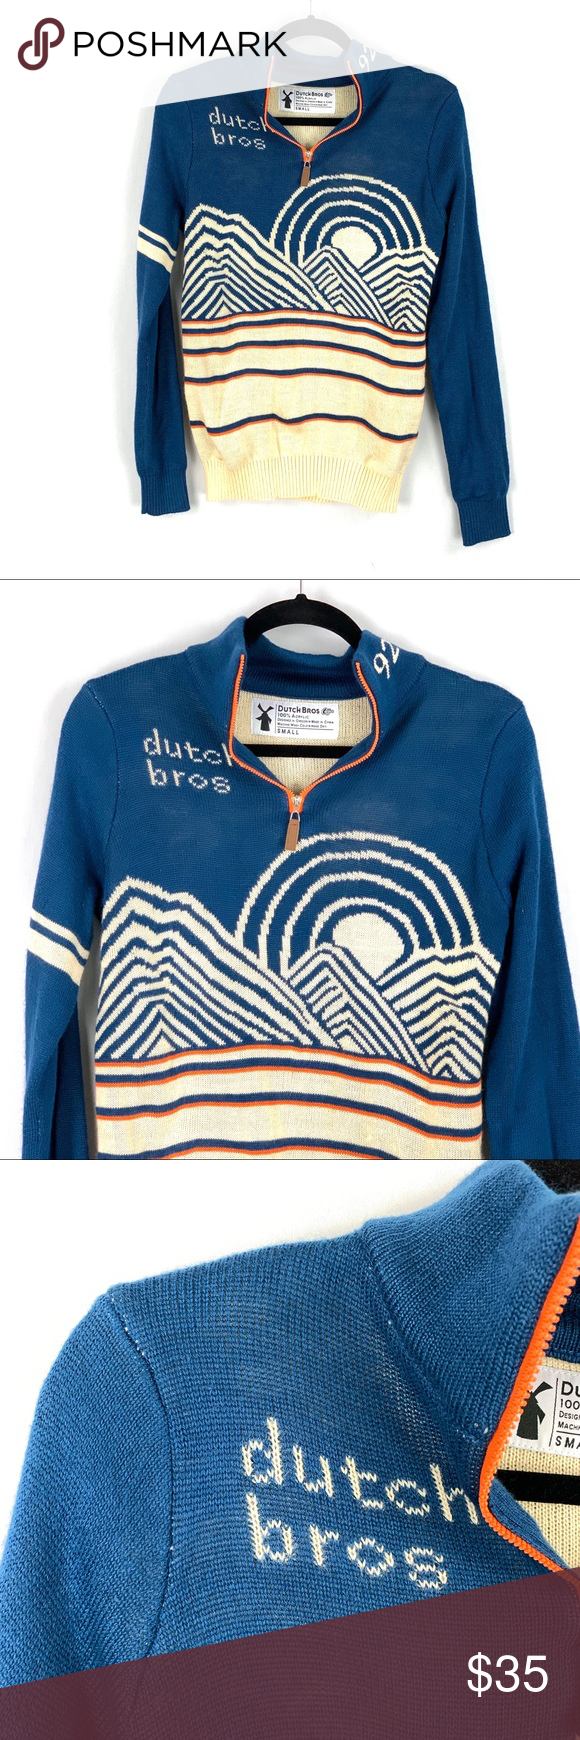 Dutch Bros Coffee | Unisex 1/4 Zip Sweater Dutch Bros Coffee - Dutch Brothers - Unisex 1/4 Zip Sweater - Small - Blue Cream Orange - Mountain Sunrise Graphic - 92 - Long Sleeve   Note: Gently pre-owned, no rips, holes or stains. Some of the white stitching can be seen at the blue seams; please see photos as part of description.  Content: 100% Acrylic  Measurements: (Laying Flat) Underarm to Underarm:~19 Shoulder to Shoulder:~16 1/2 Sleeve Length:~27 Length:~27 Dutch Bros Sweaters #dutchbros #dutchbros